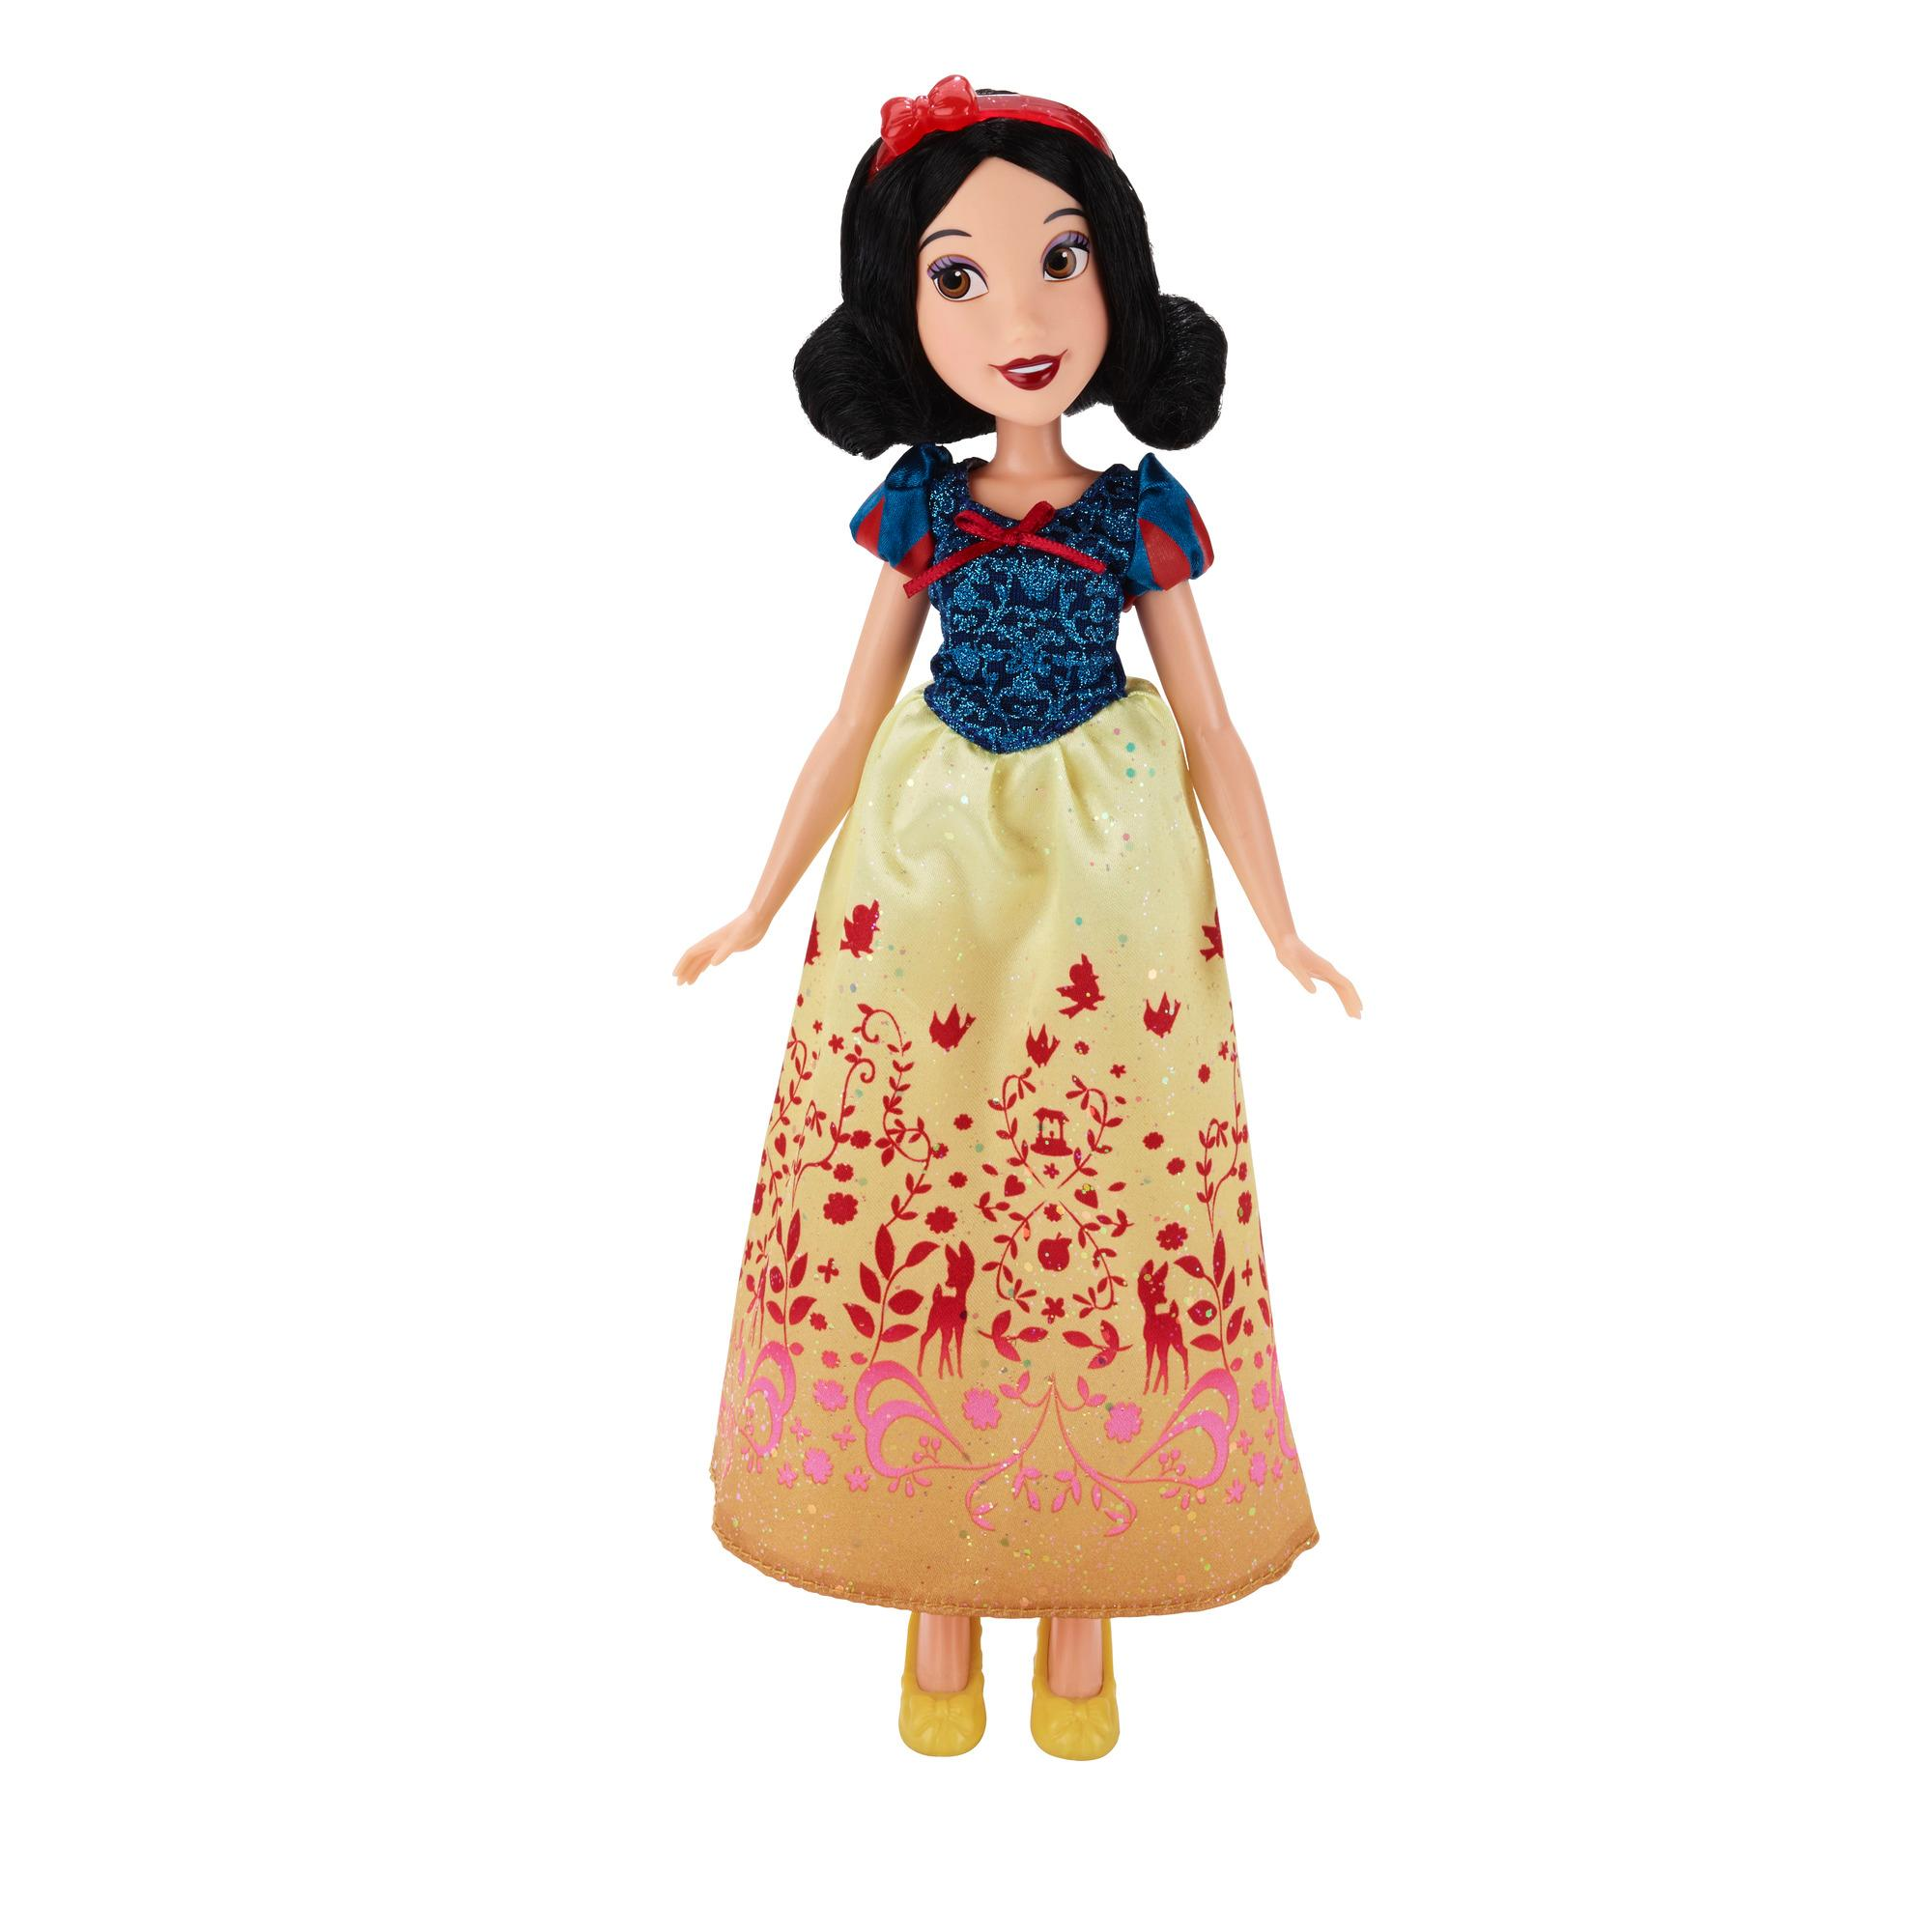 Disney Princess Royal Shimmer Snow White Doll 1